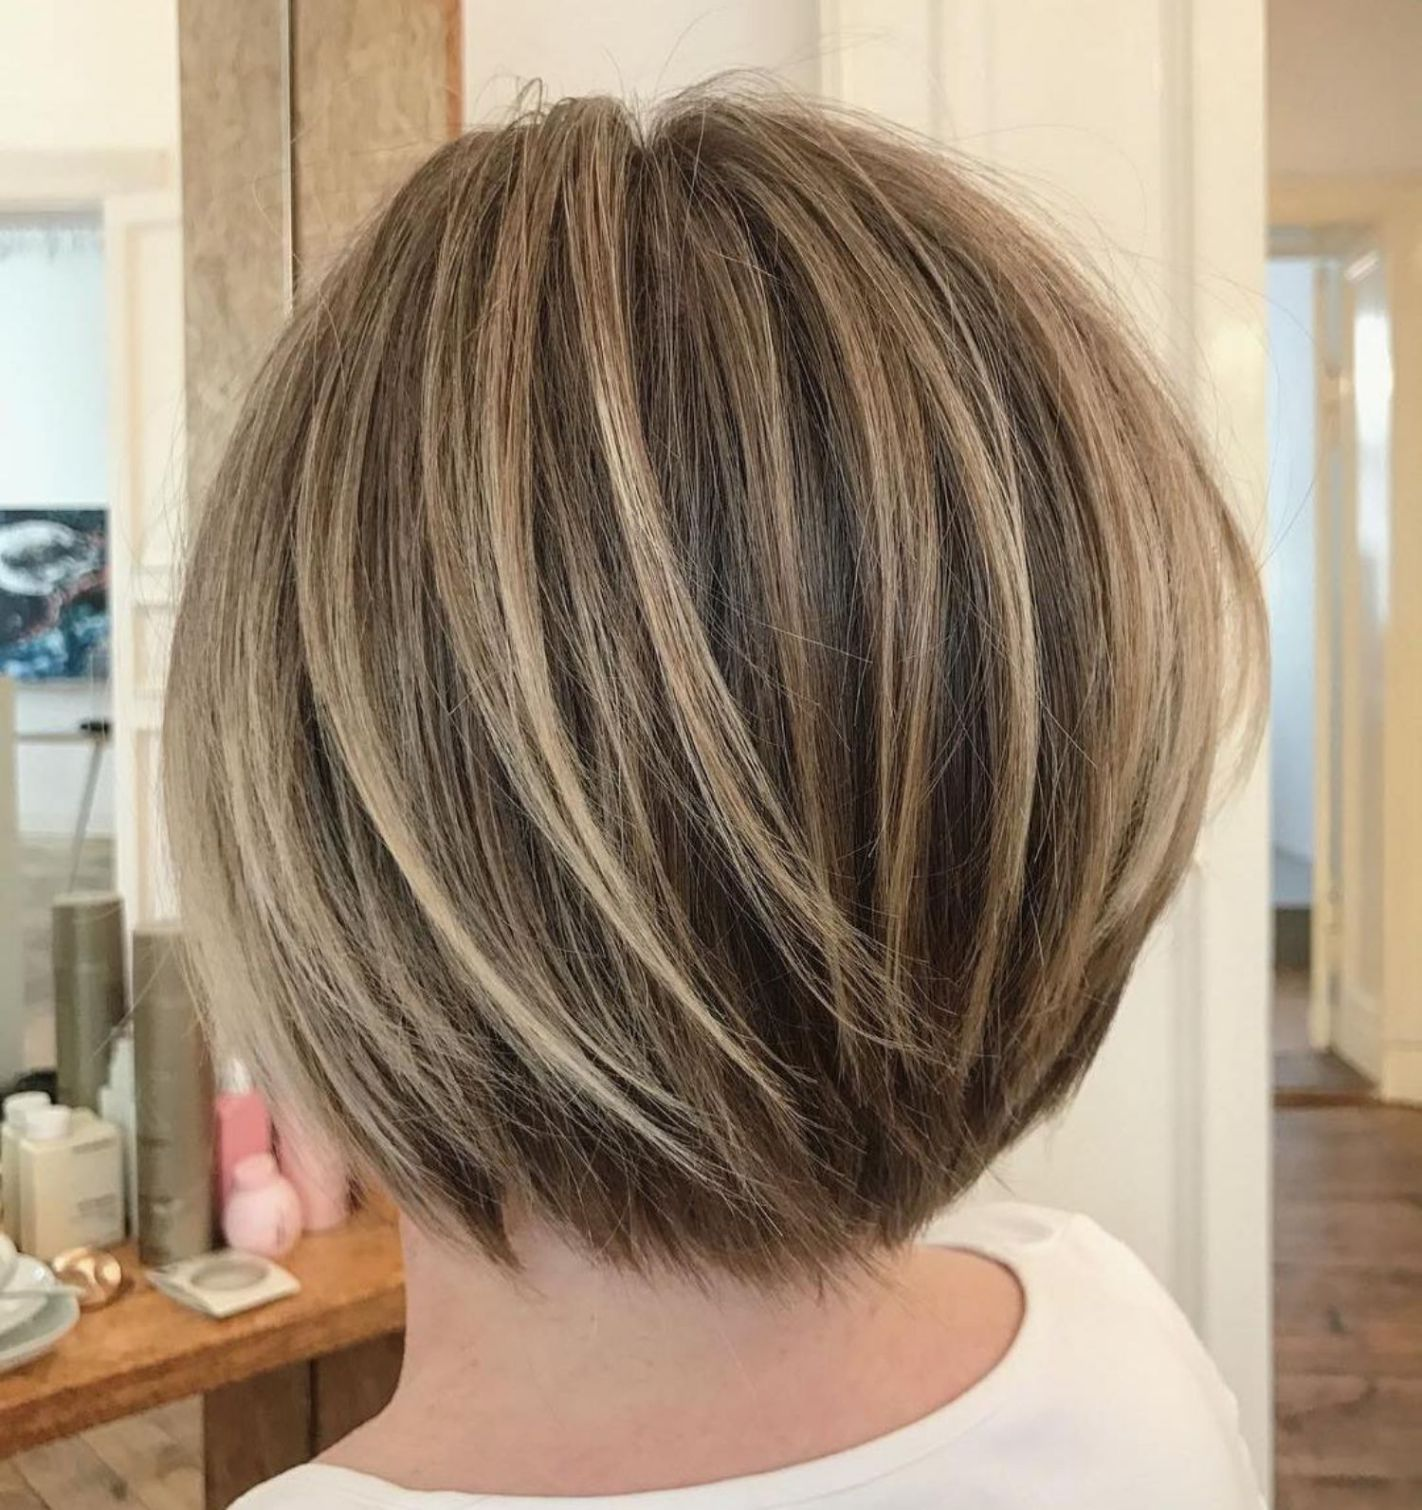 70 Winning Looks With Bob Haircuts For Fine Hair Bob Haircut For Fine Hair Bob Hairstyles For Fine Hair Short Hairstyles Fine